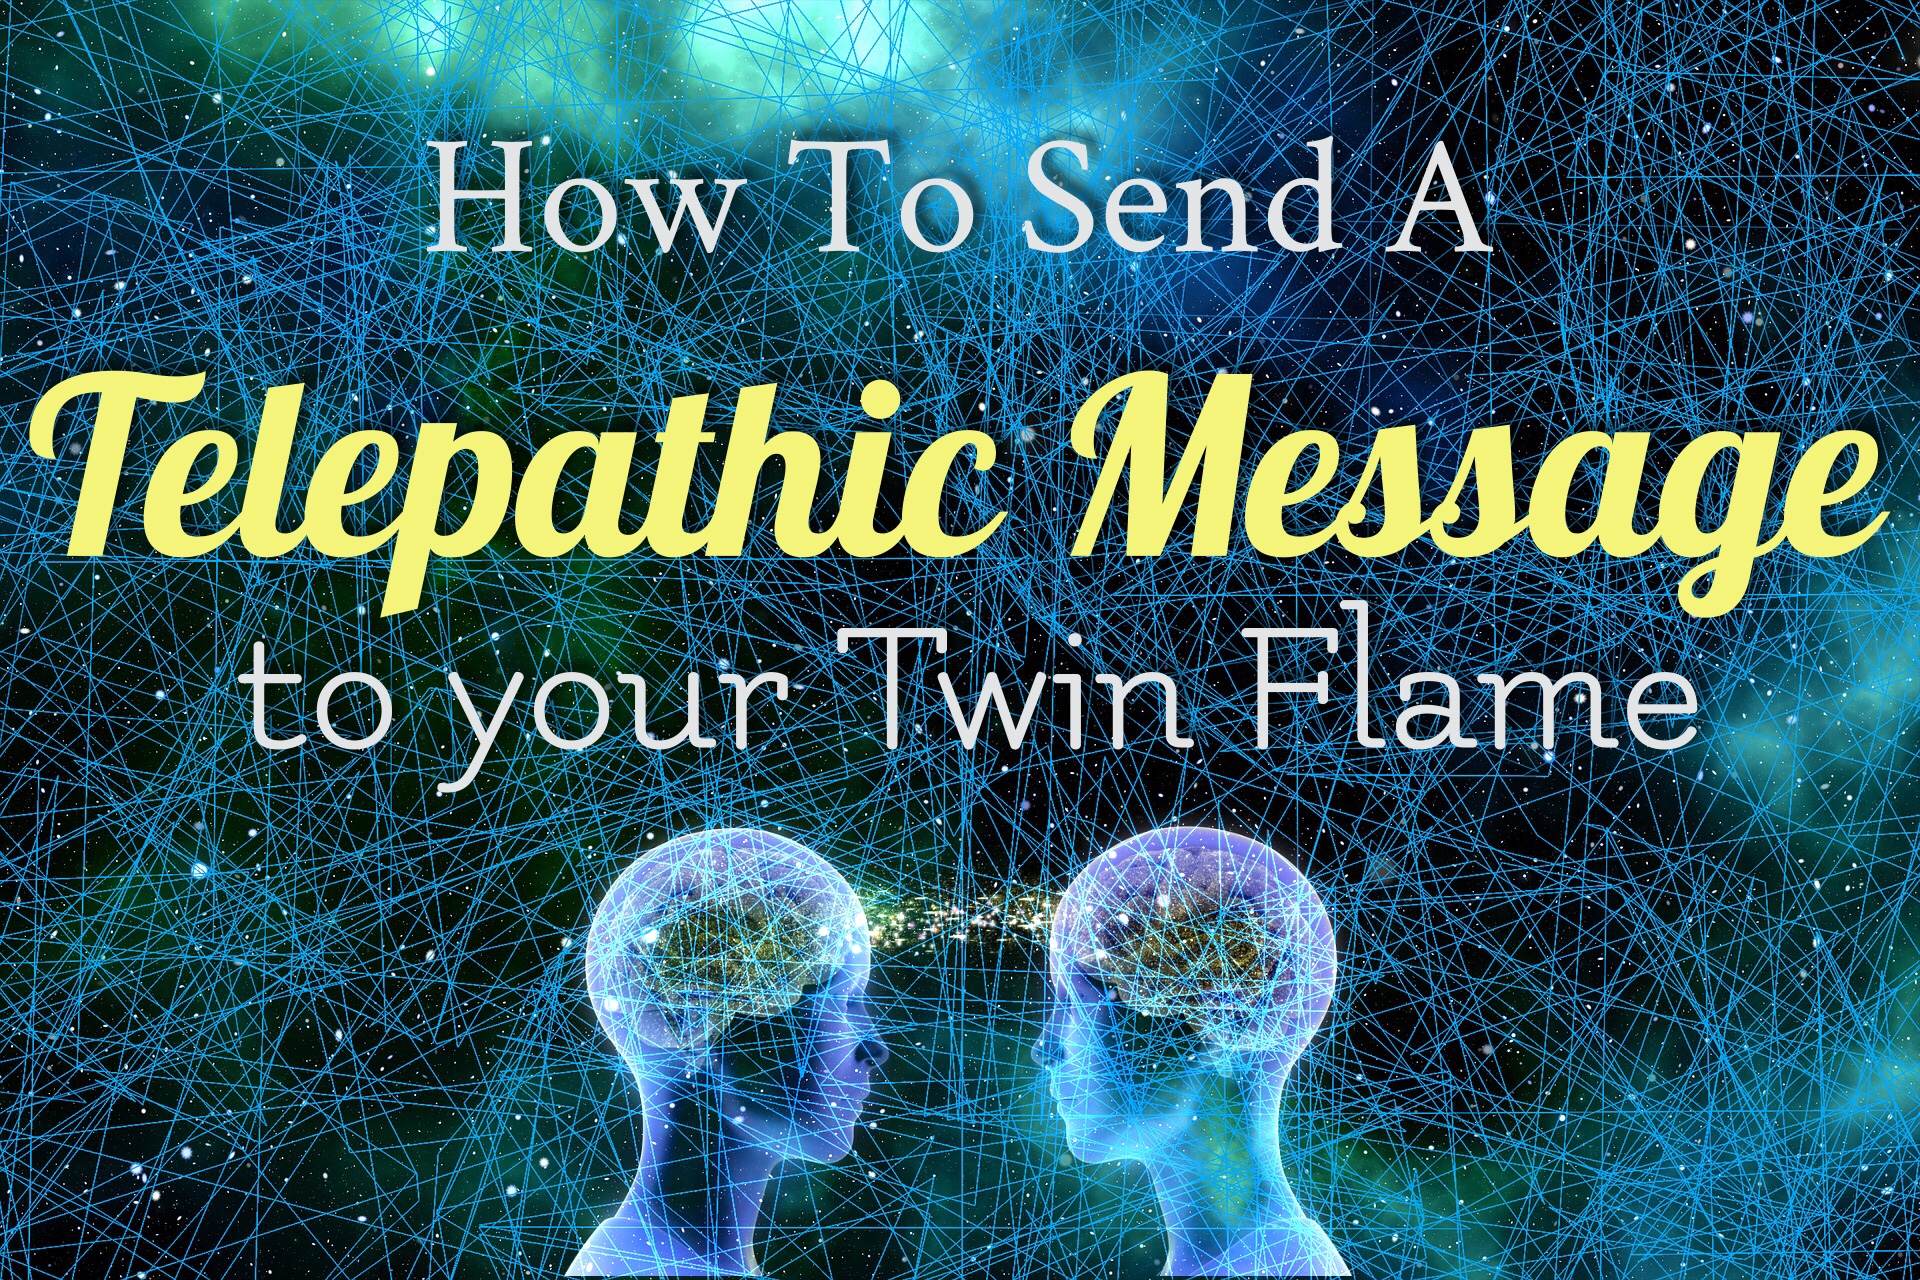 How To Send A Telepathic Message To Your Twin Flame – The